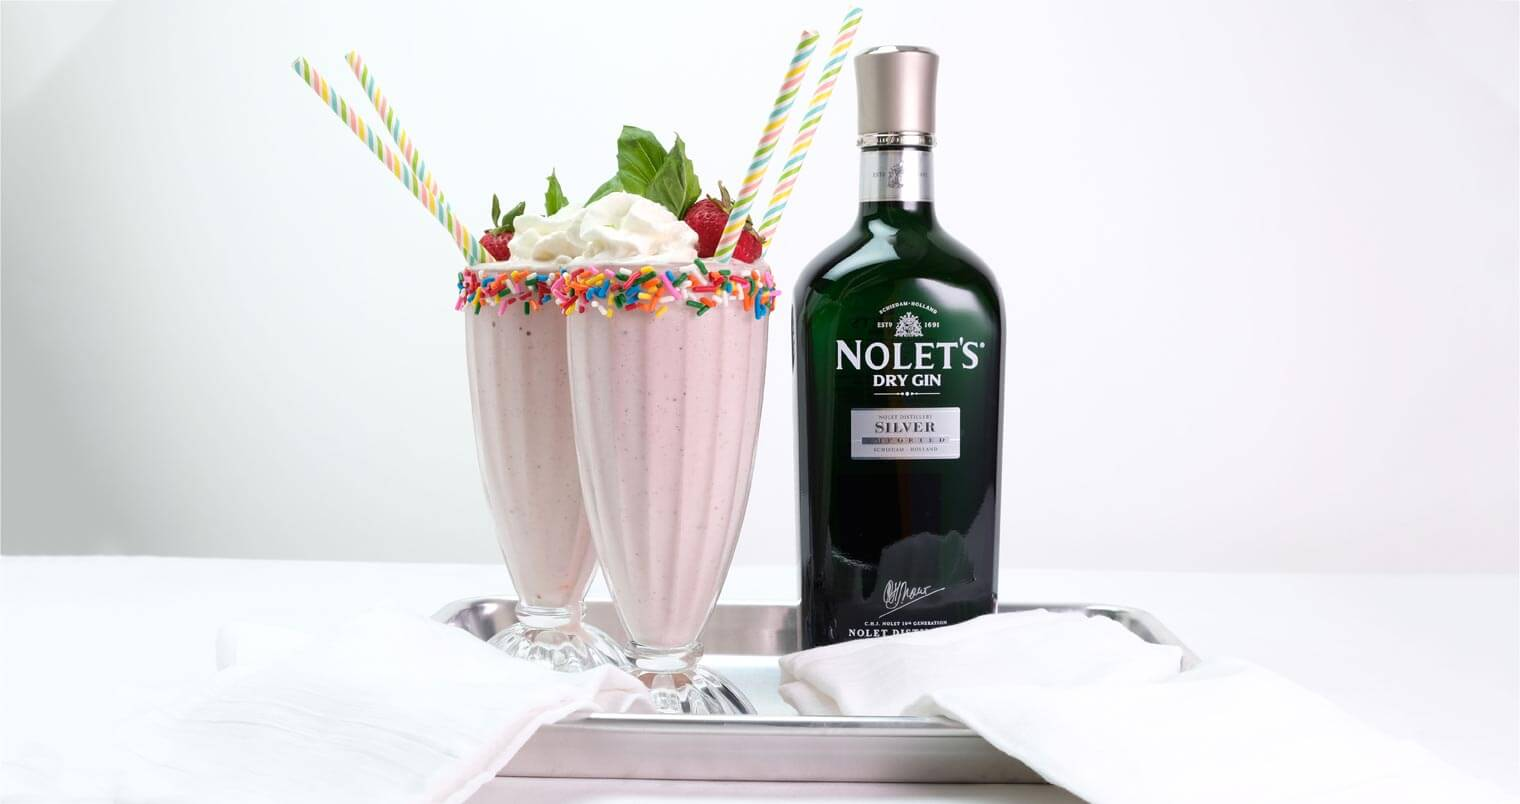 NOLET'S Spiked Strawberry Milkshake, cockails, bottle on silver tray, featured image